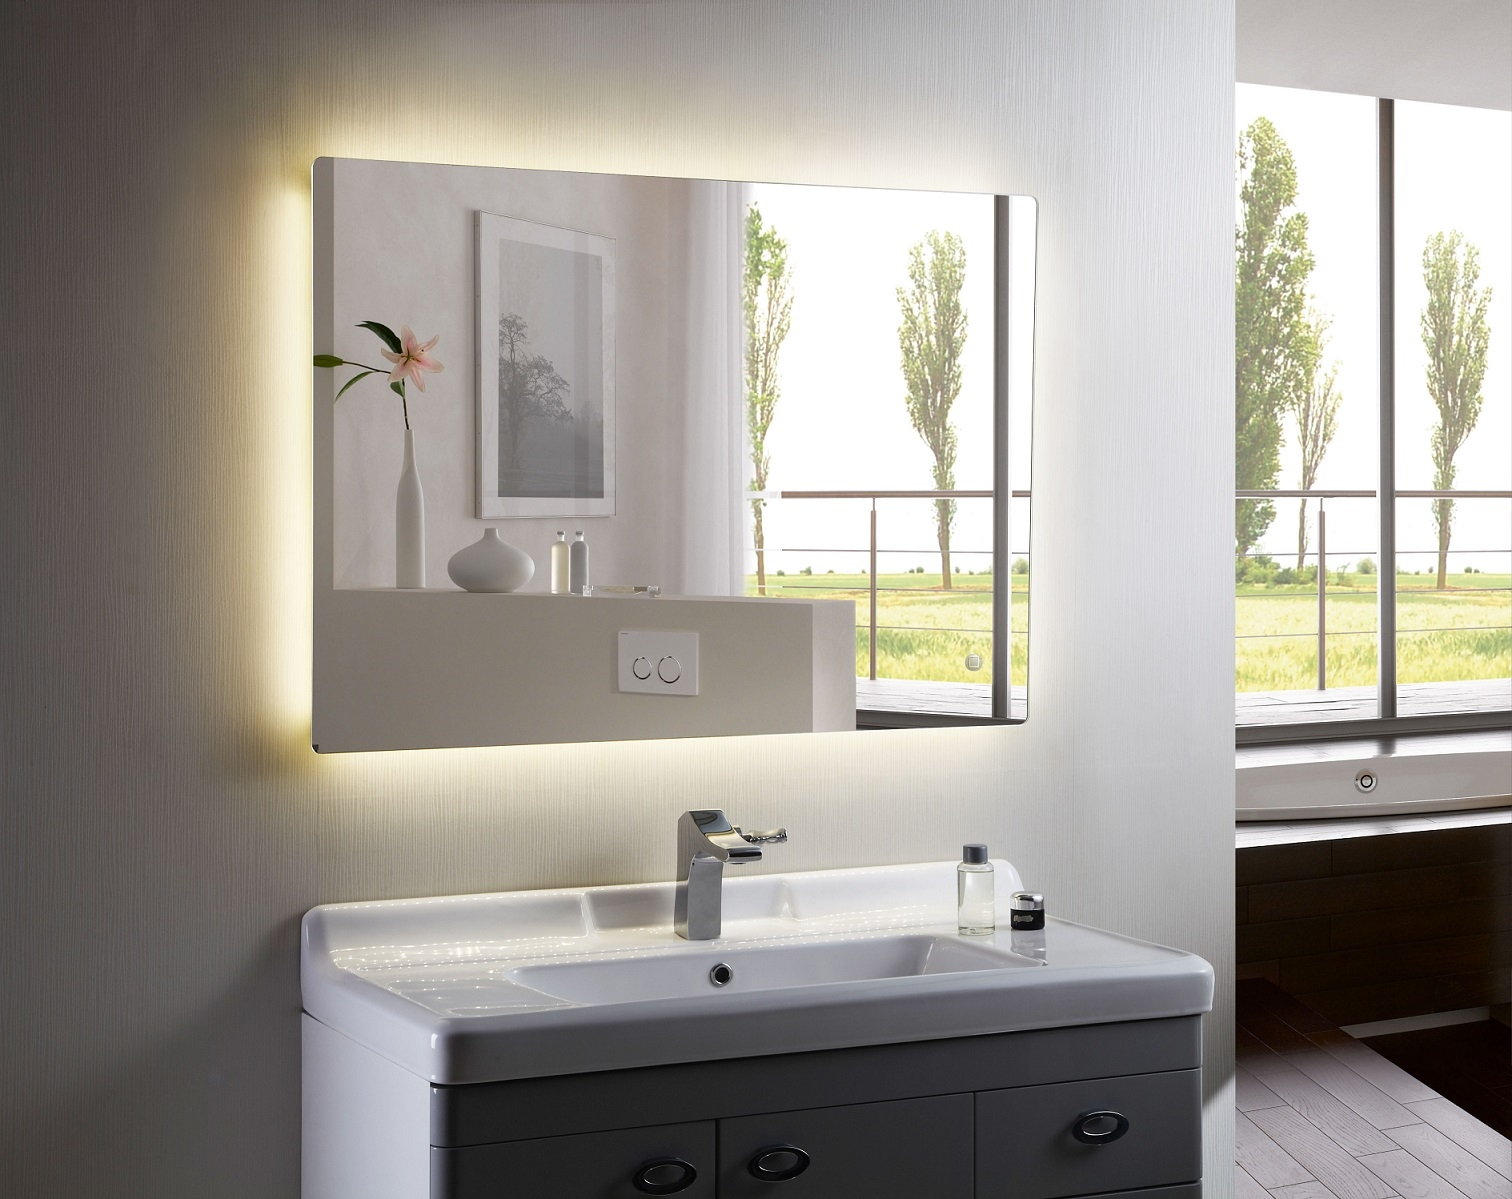 Led Backlit Mirrors For Bathrooms